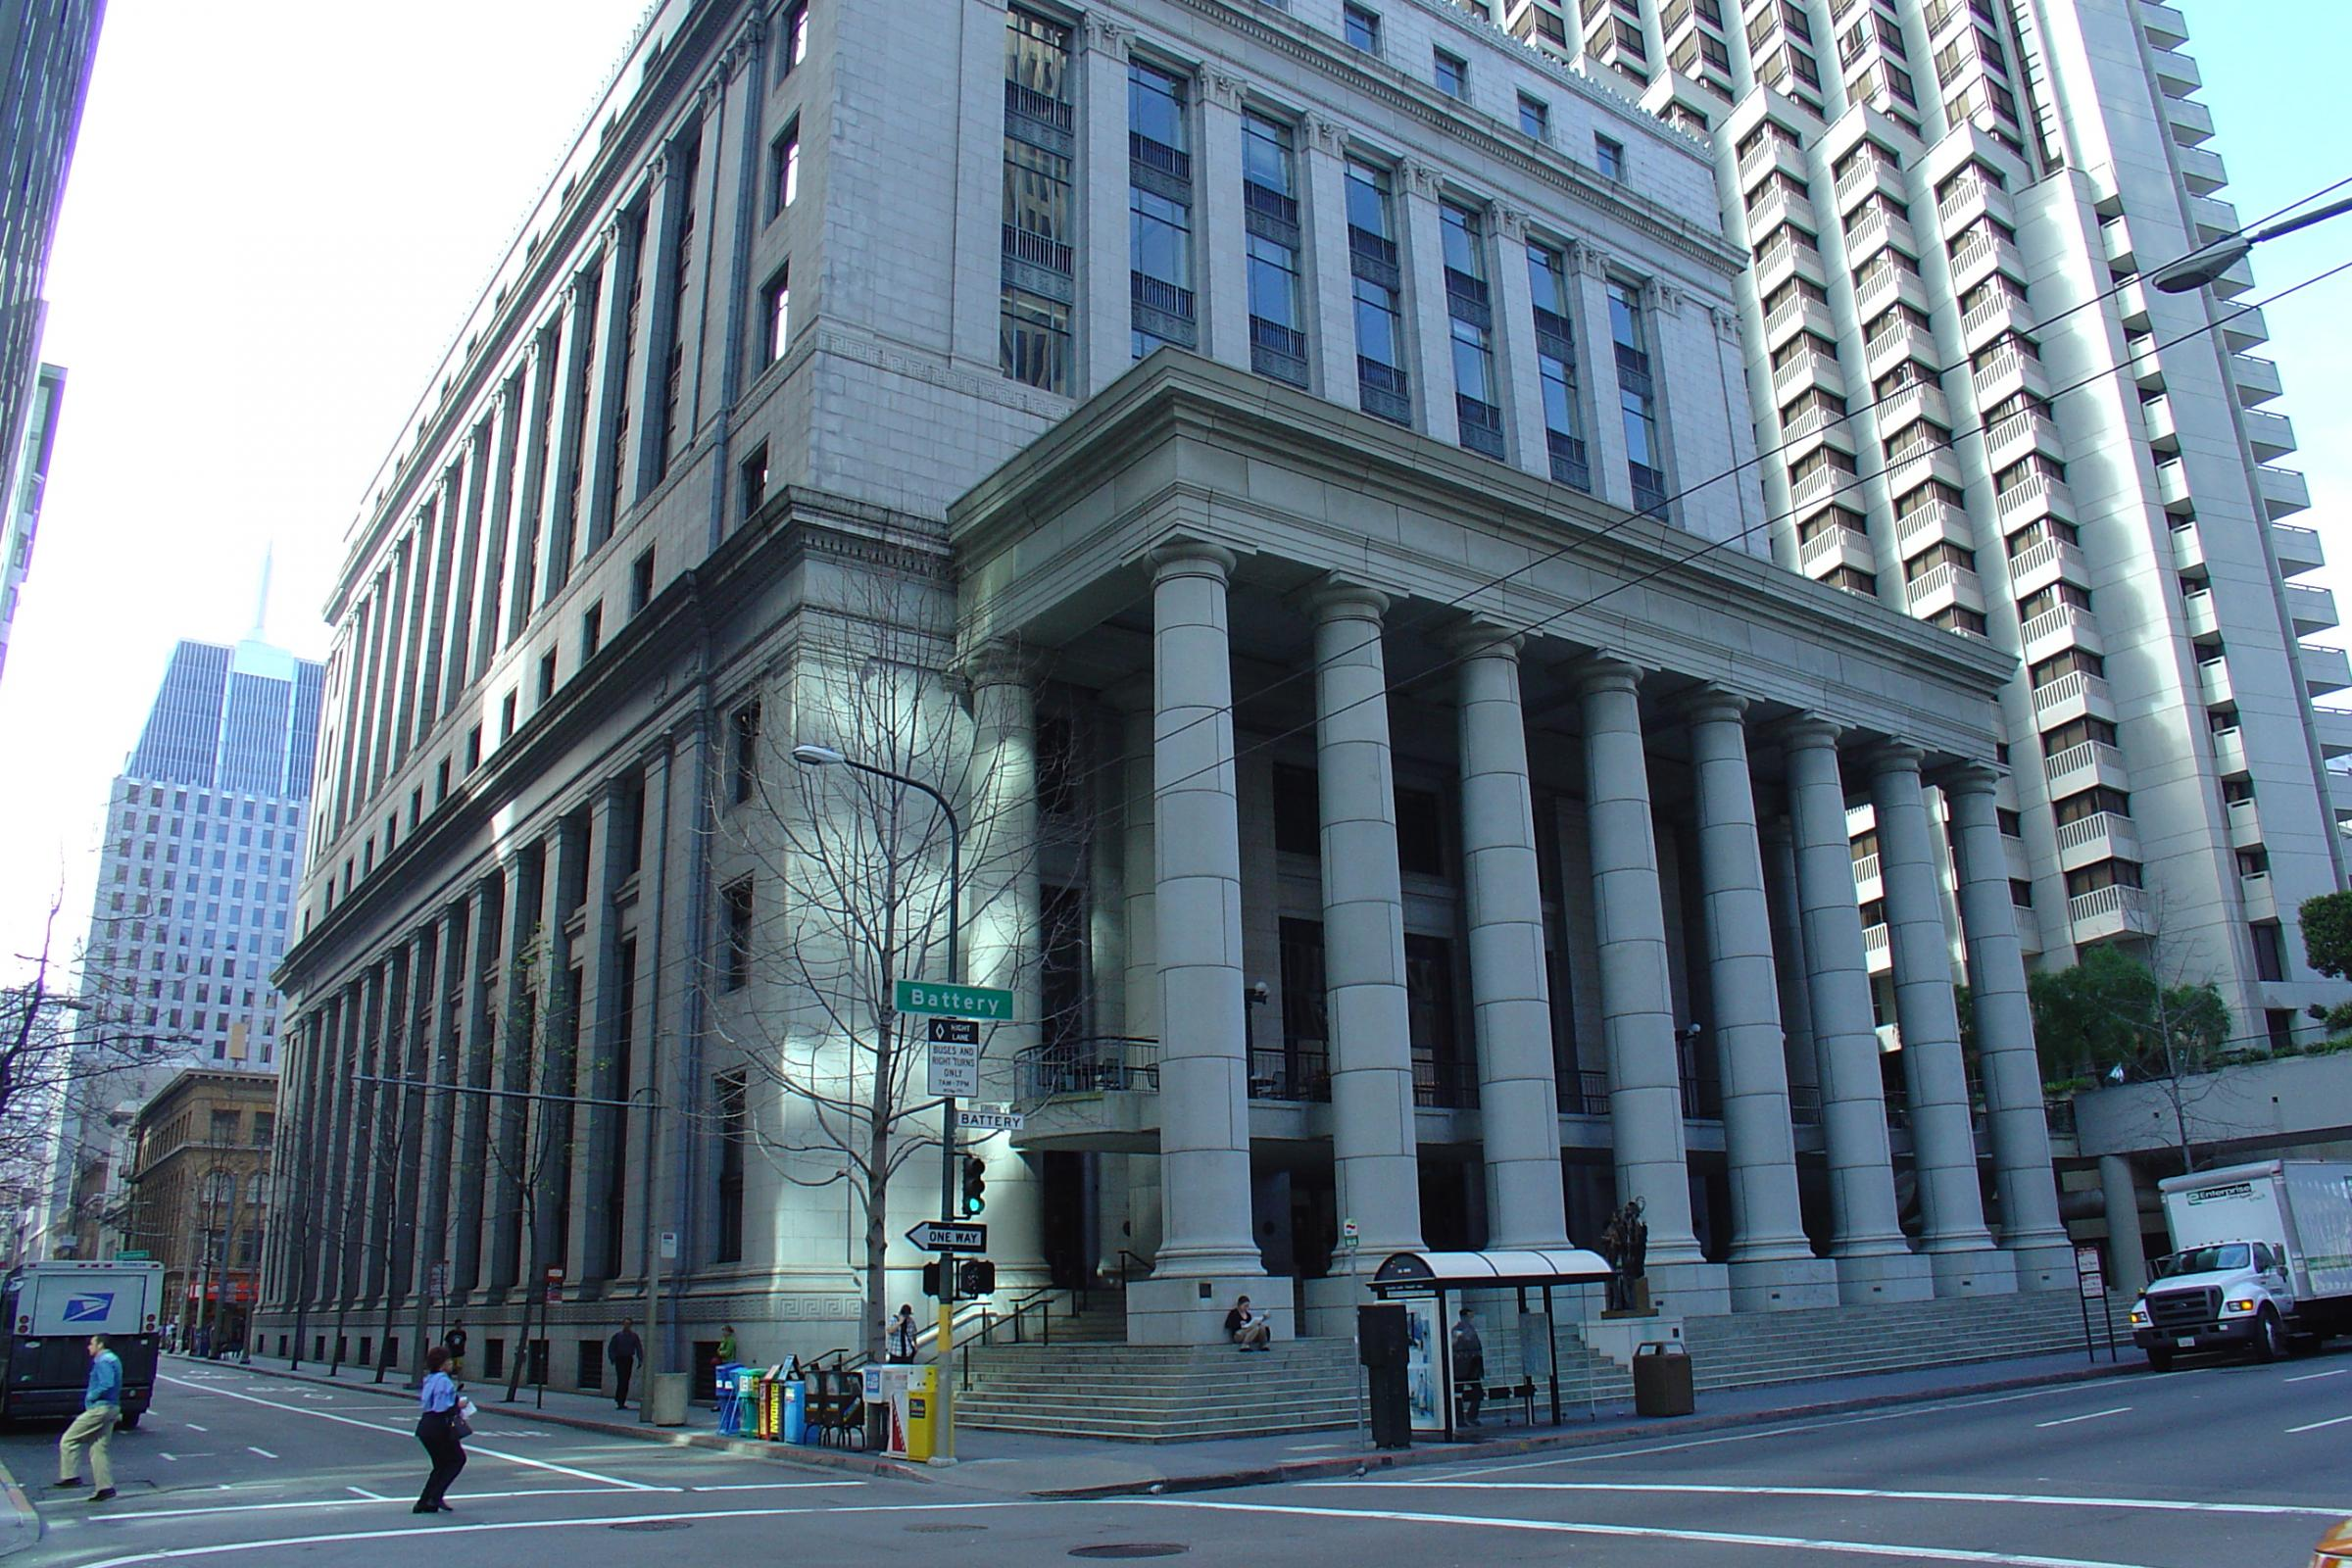 301 Battery St (old Federal Reserve Bank) San Francisco. 5 Key Signs. Sofia The First Signs. Keyboard Shortcut Pc Signs. Farm Road Signs. Half Happy Half Signs. Subtlety Signs. Waiting Signs Of Stroke. February 1st Signs